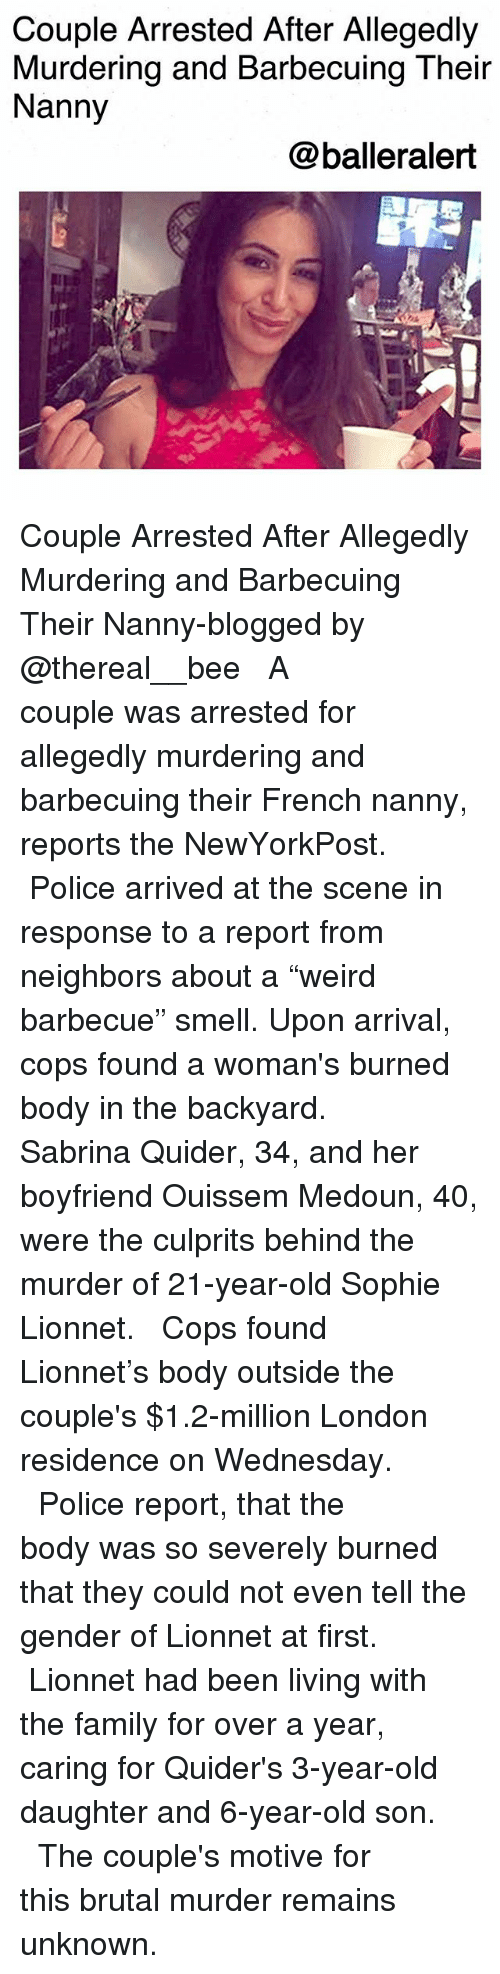 """Family, Memes, and Police: Couple Arrested After Allegedly  Murdering and Barbecuing Their  Nanny  @balleralert Couple Arrested After Allegedly Murdering and Barbecuing Their Nanny-blogged by @thereal__bee ⠀⠀⠀⠀⠀⠀⠀⠀⠀ ⠀⠀ A couple was arrested for allegedly murdering and barbecuing their French nanny, reports the NewYorkPost. ⠀⠀⠀⠀⠀⠀⠀⠀⠀ ⠀⠀ Police arrived at the scene in response to a report from neighbors about a """"weird barbecue"""" smell. Upon arrival, cops found a woman's burned body in the backyard. ⠀⠀⠀⠀⠀⠀⠀⠀⠀ ⠀⠀ Sabrina Quider, 34, and her boyfriend Ouissem Medoun, 40, were the culprits behind the murder of 21-year-old Sophie Lionnet. ⠀⠀⠀⠀⠀⠀⠀⠀⠀ ⠀⠀ Cops found Lionnet's body outside the couple's $1.2-million London residence on Wednesday. ⠀⠀⠀⠀⠀⠀⠀⠀⠀ ⠀⠀ Police report, that the body was so severely burned that they could not even tell the gender of Lionnet at first. ⠀⠀⠀⠀⠀⠀⠀⠀⠀ ⠀⠀ Lionnet had been living with the family for over a year, caring for Quider's 3-year-old daughter and 6-year-old son. ⠀⠀⠀⠀⠀⠀⠀⠀⠀ ⠀⠀ The couple's motive for this brutal murder remains unknown."""